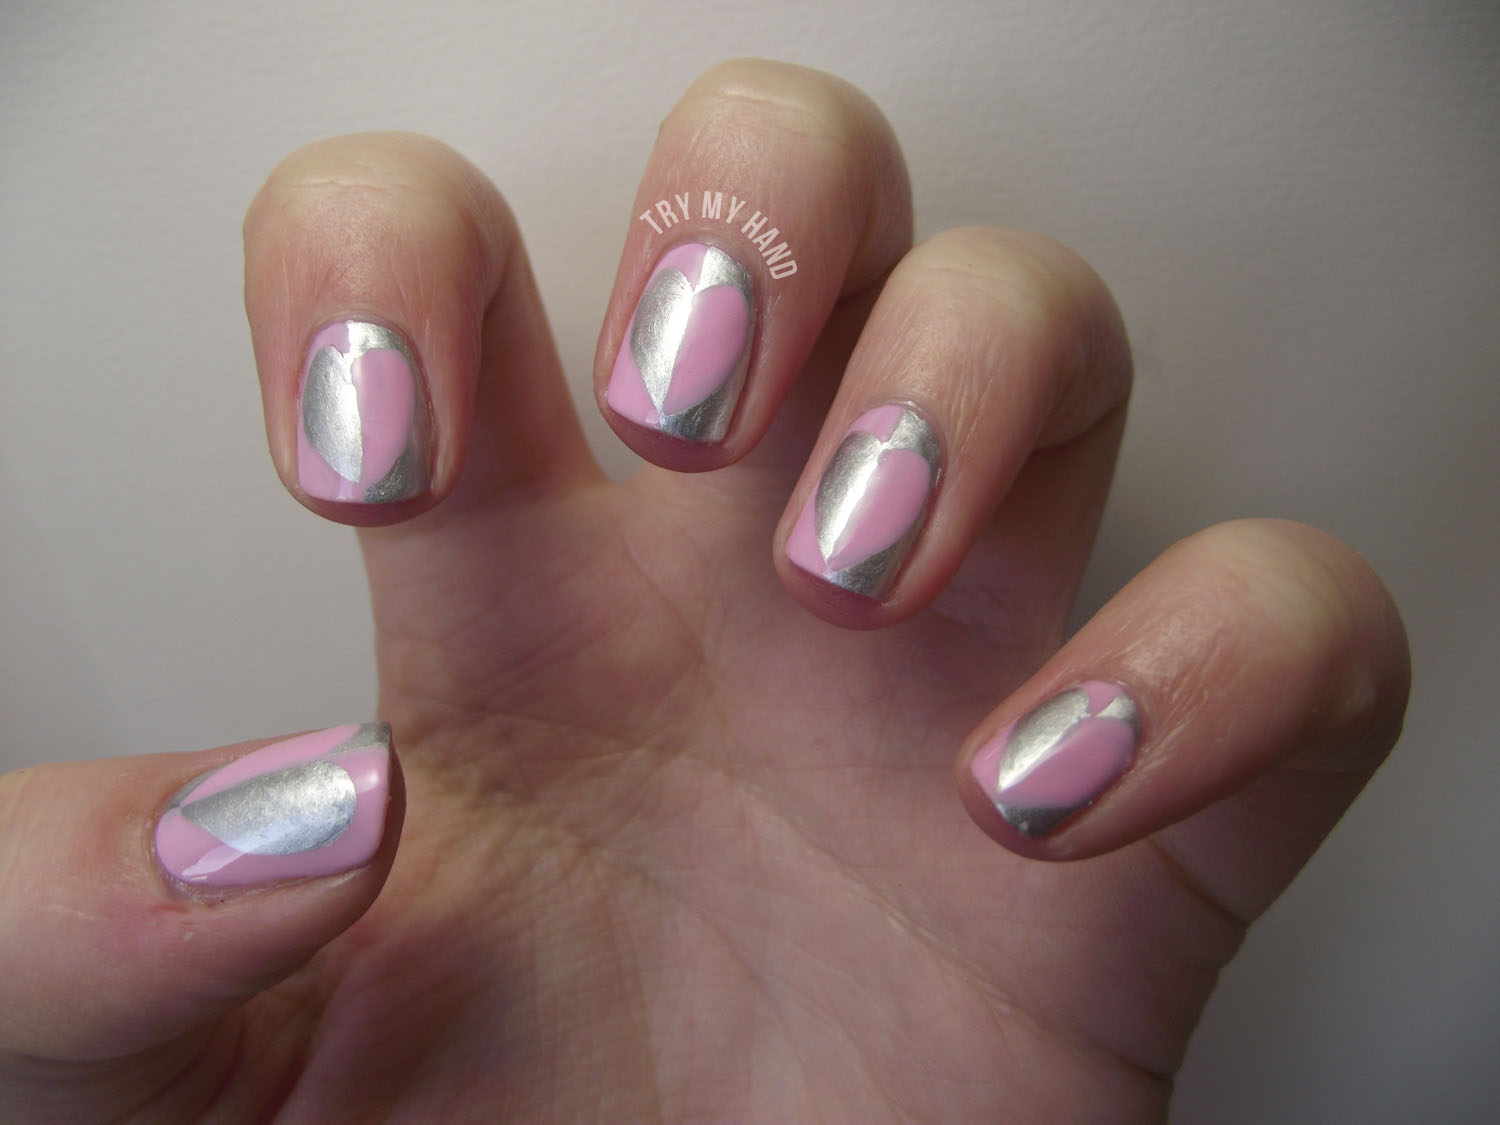 Try My Hand Alphabet Nail Art Challenge X For Xoxo